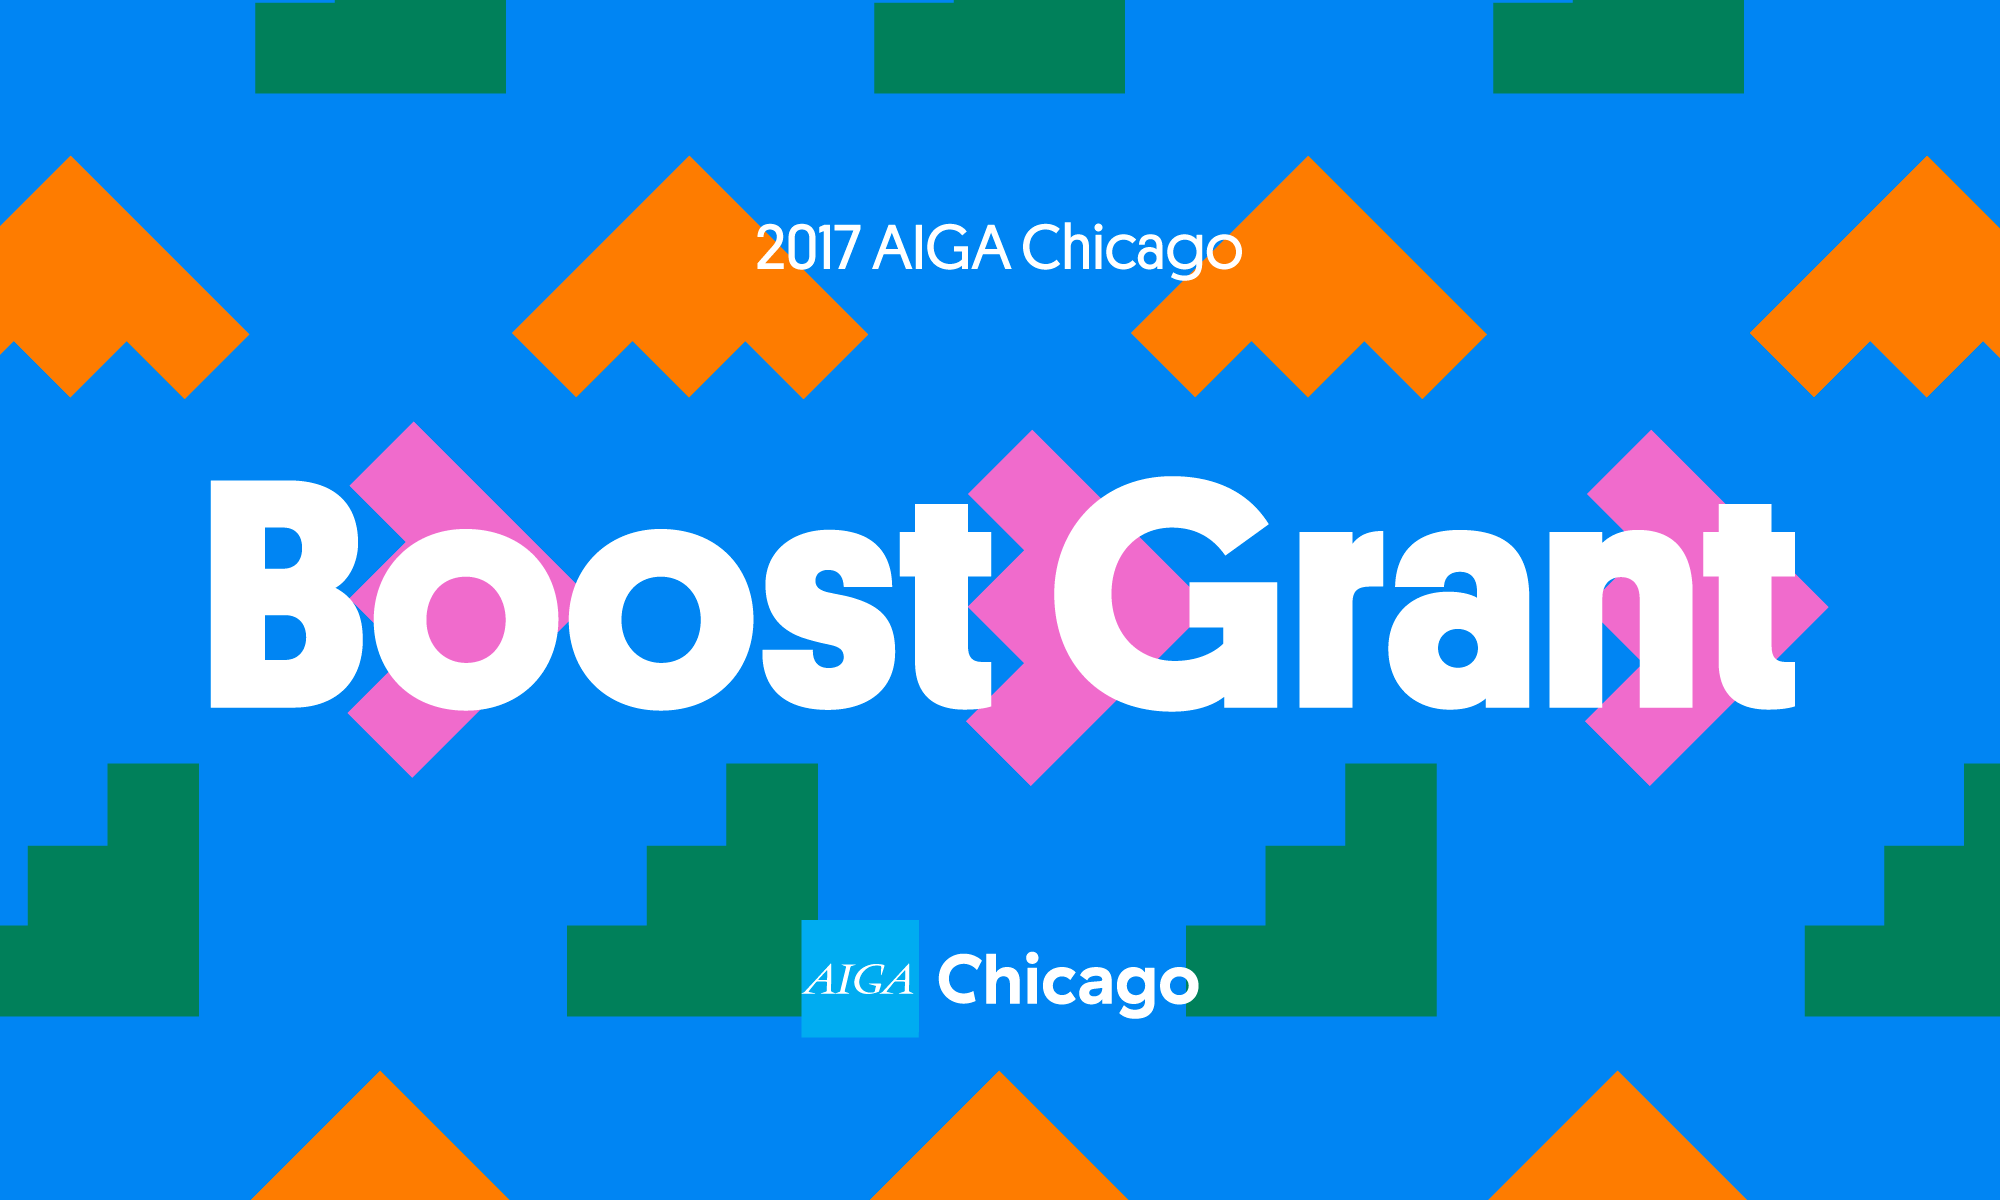 aiga chicago the professional association for design news image